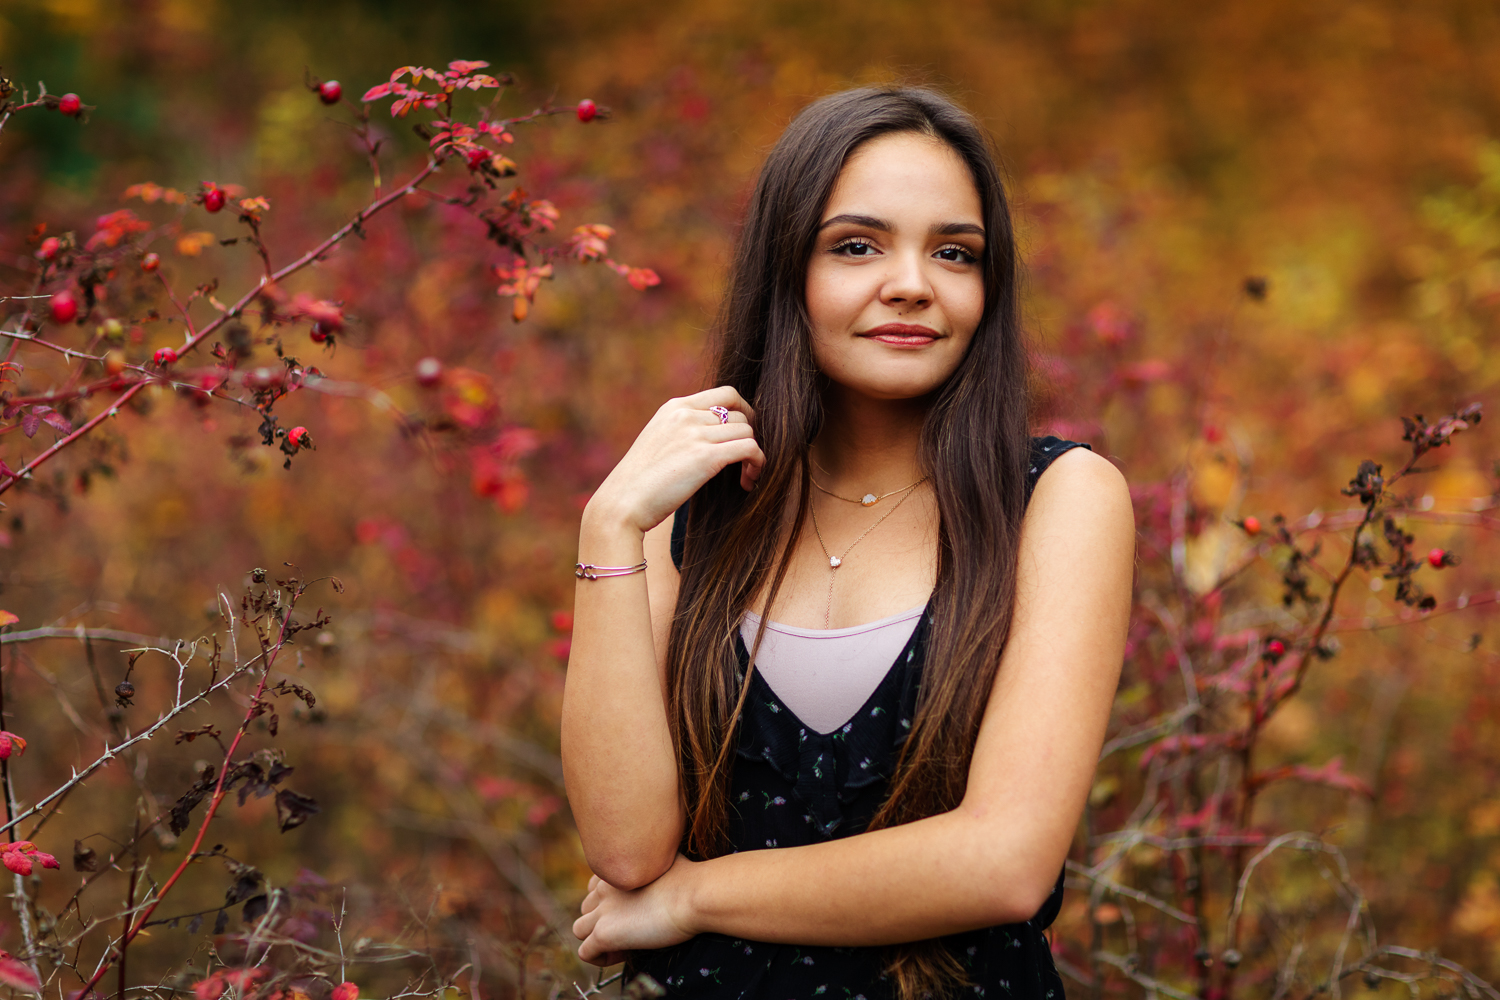 ariellanoellephotography-portraiture-highschool-senior-photos-top-seattle-area-photographer-1-8.jpg